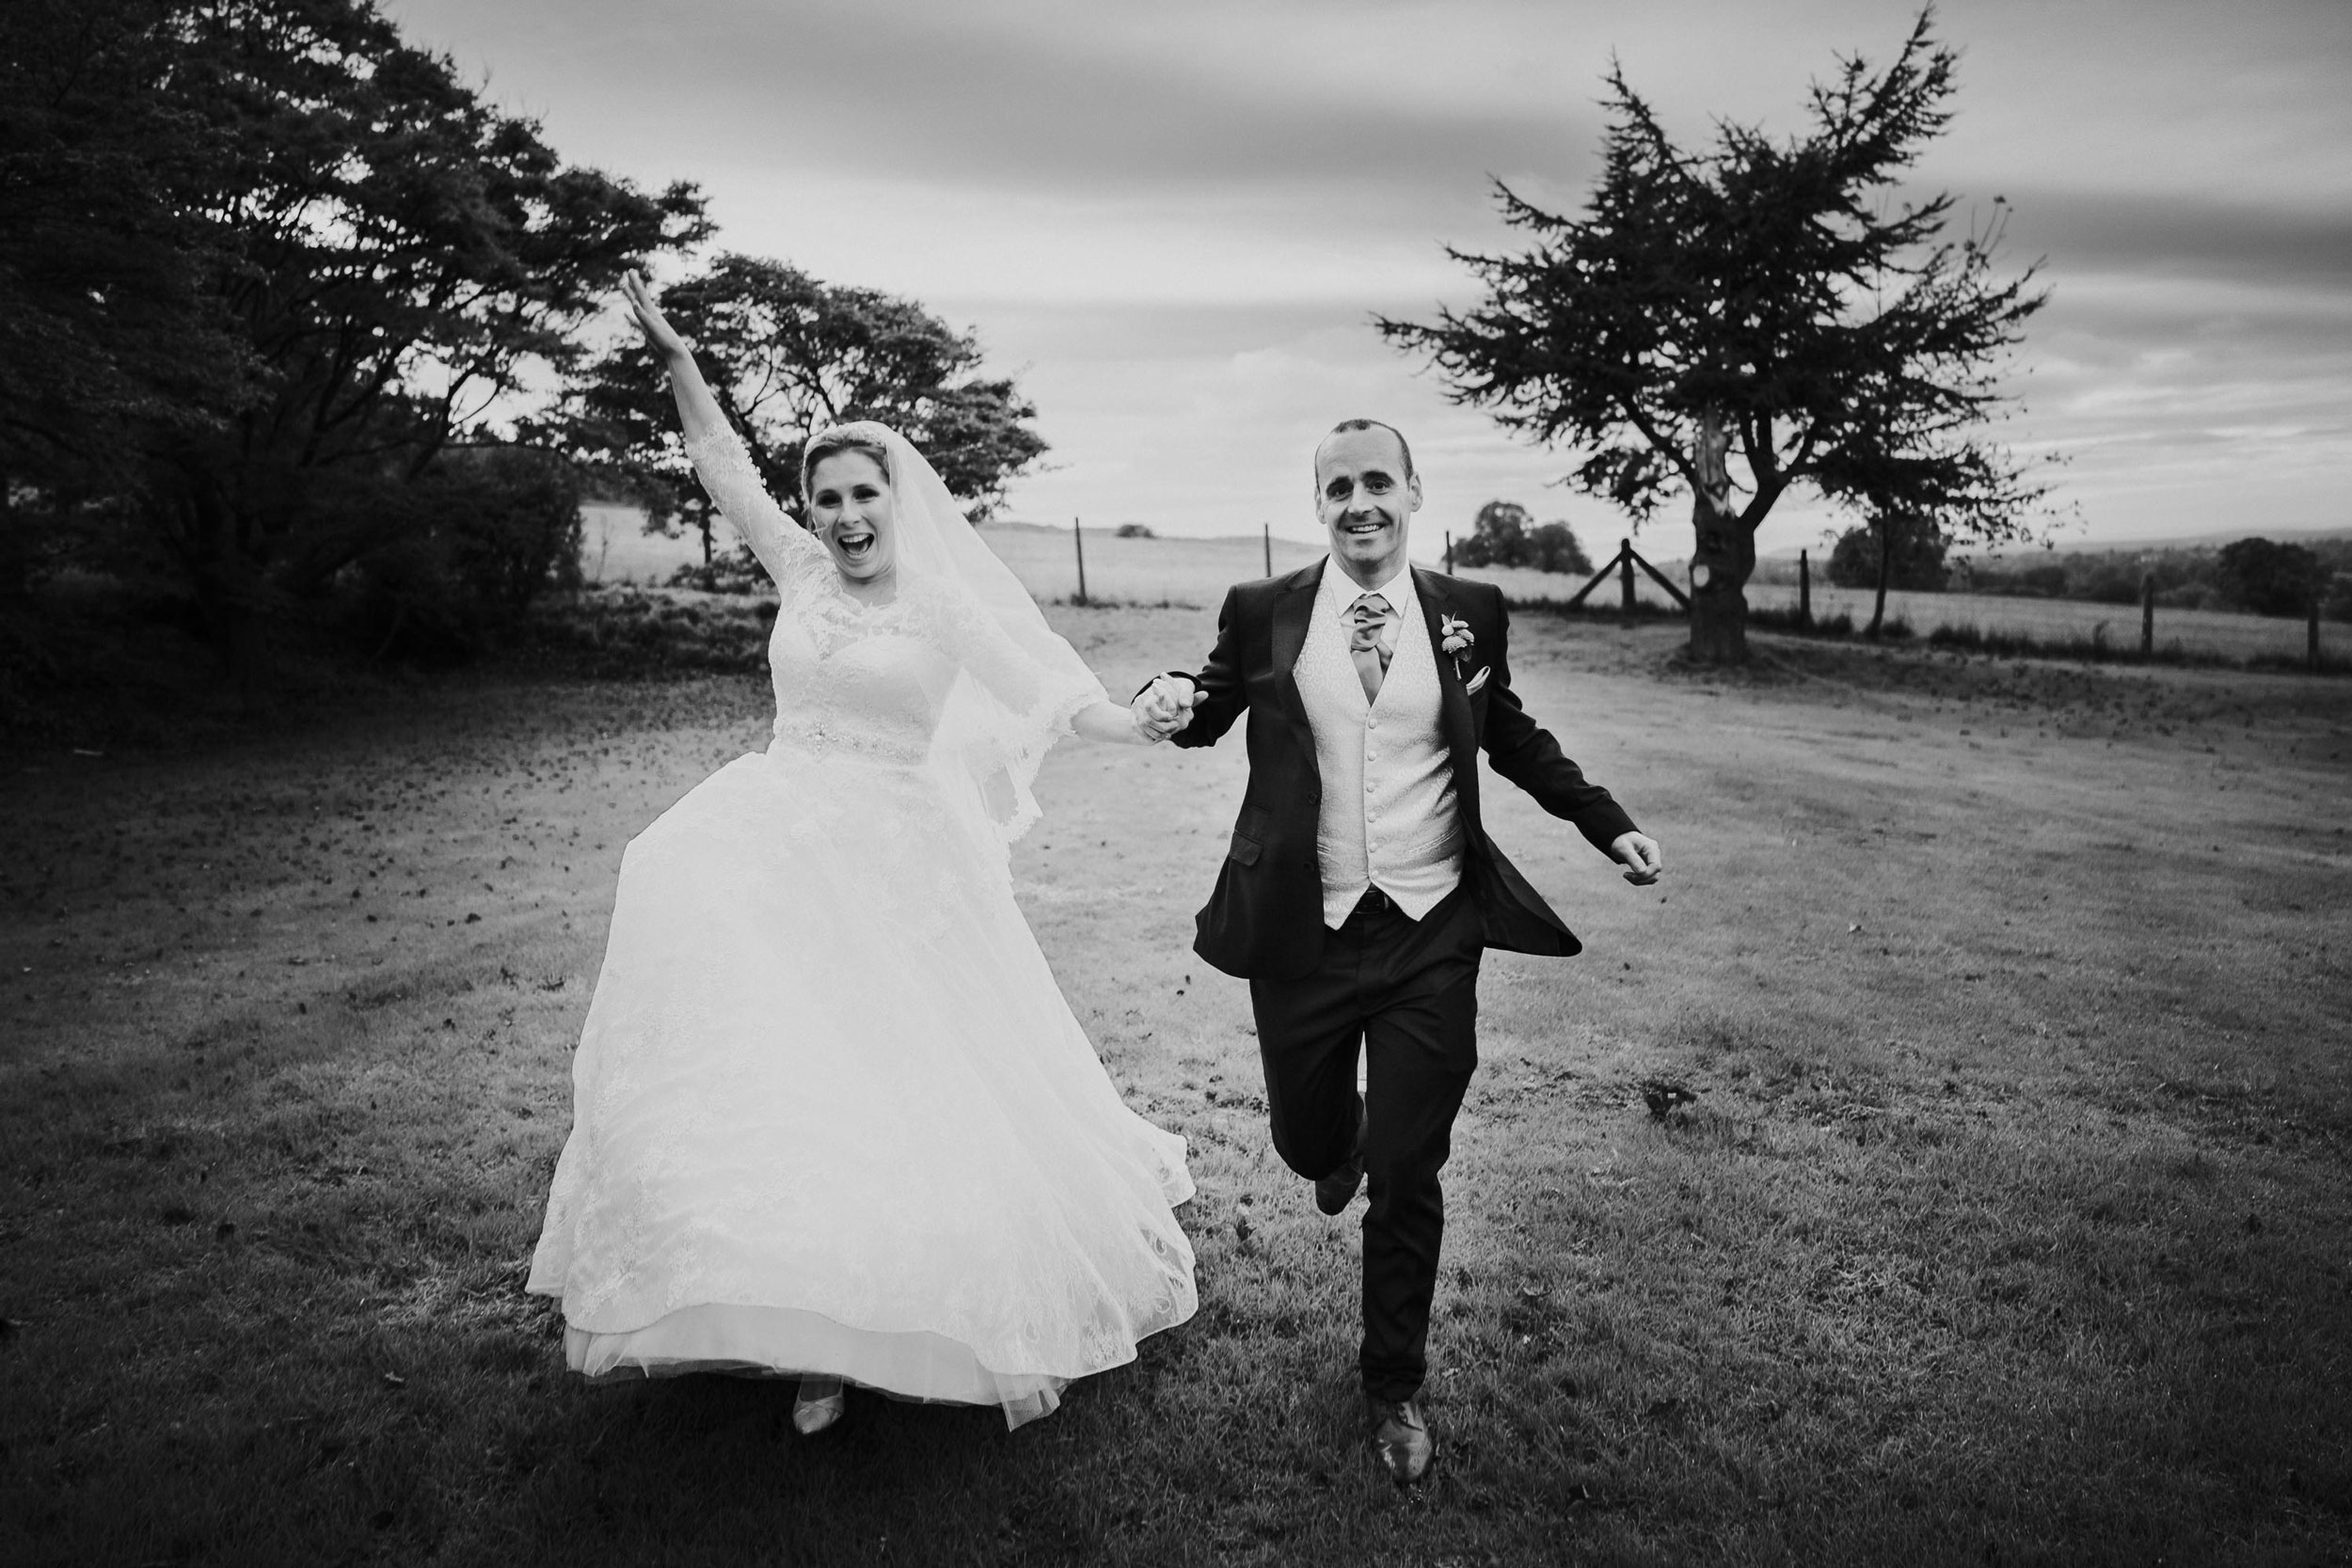 duncan-mein-photography-wedding-photographer-bristol-portfolio-131